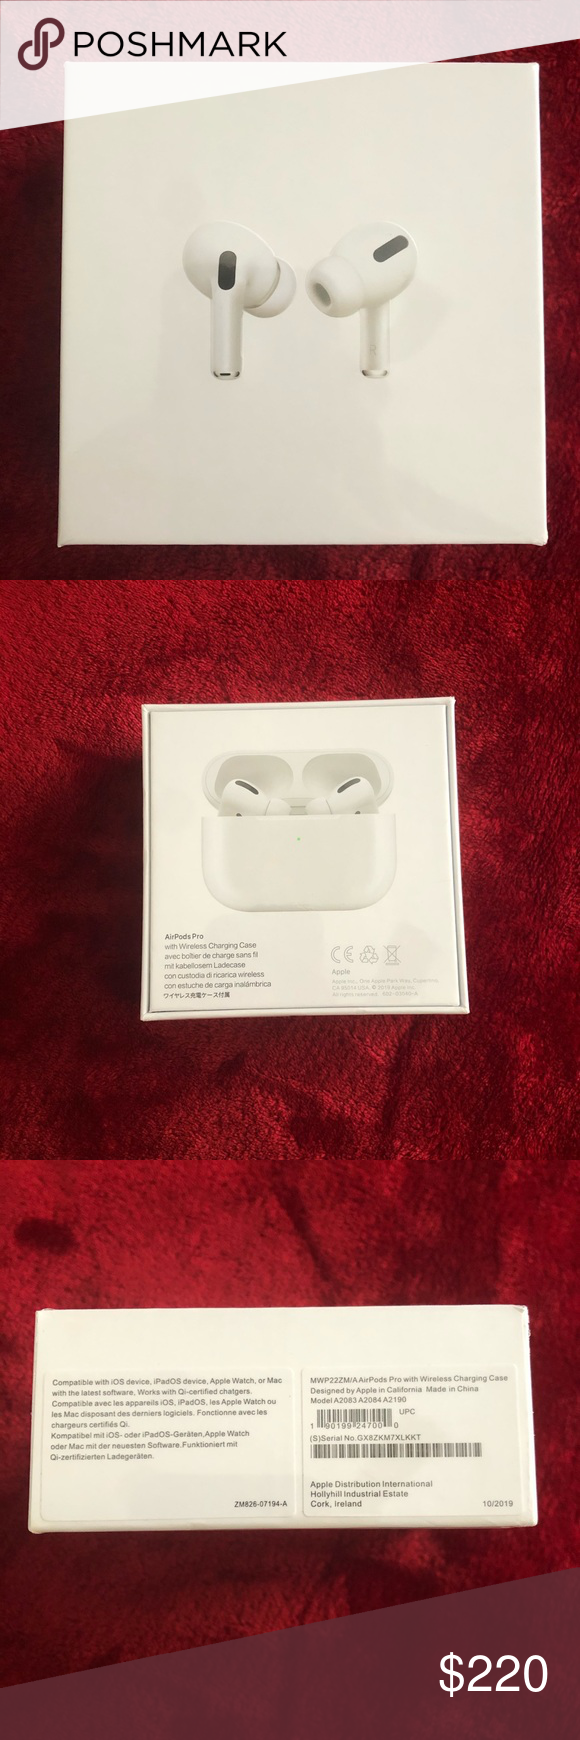 Apple Airpod Pro With Wireless Charging Apple Airpod Pro With Wireless Charging Case Brand New Sealed In Box Retails Airpod Pro Wireless Noise Cancelling